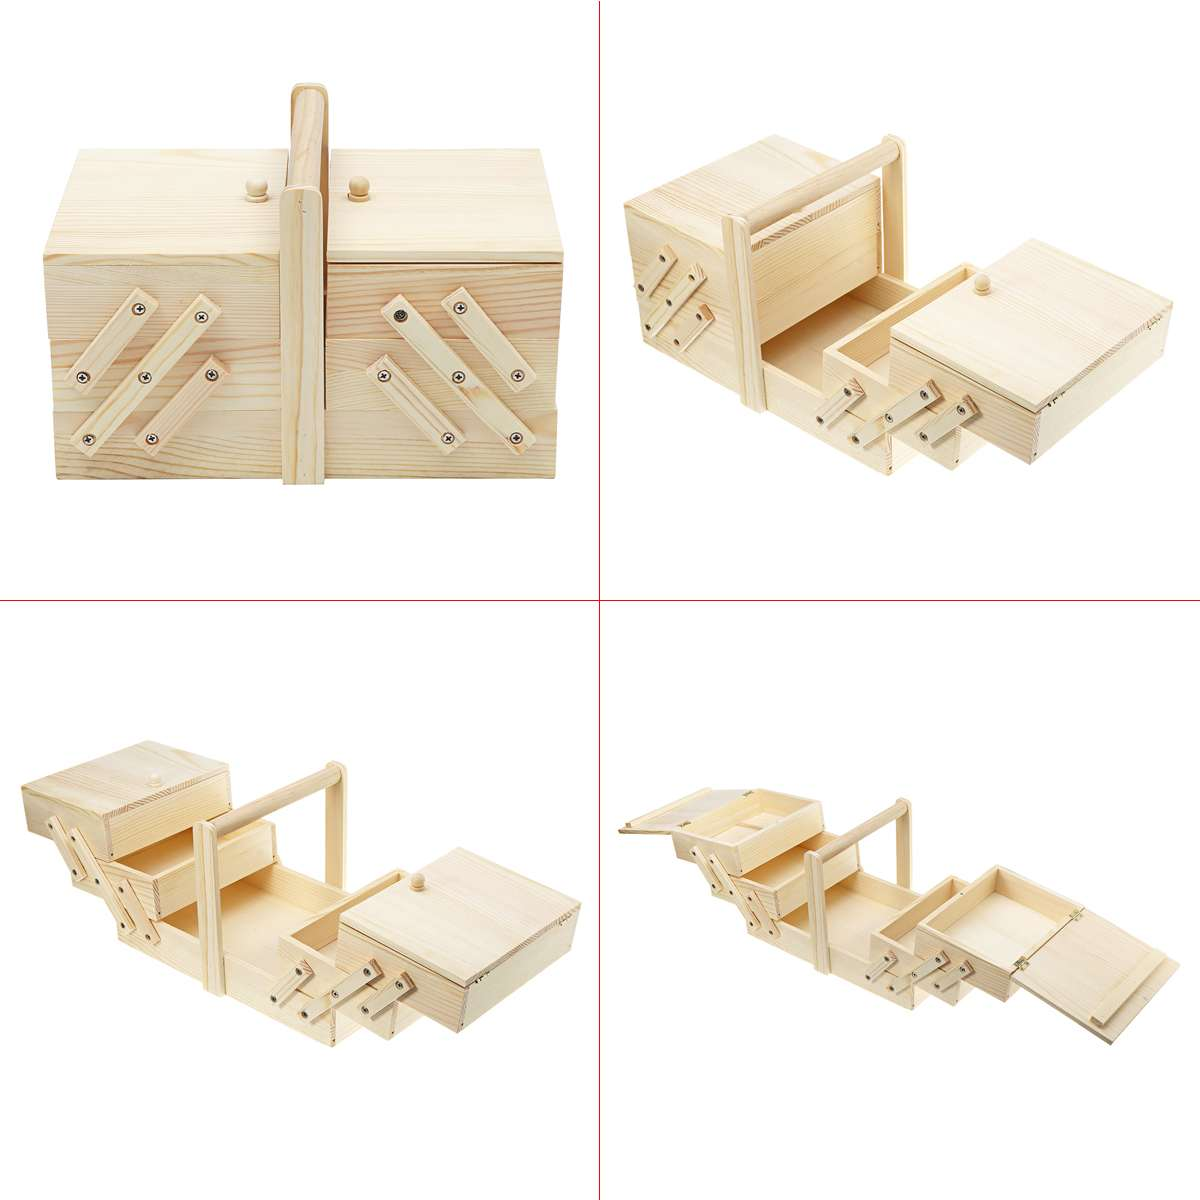 29.5x19x18cm Portable Wooden Storage Case Box Essential Oil Storage Cosmetics Vintage Jewelry Home Mess Sewing Ring Expandable